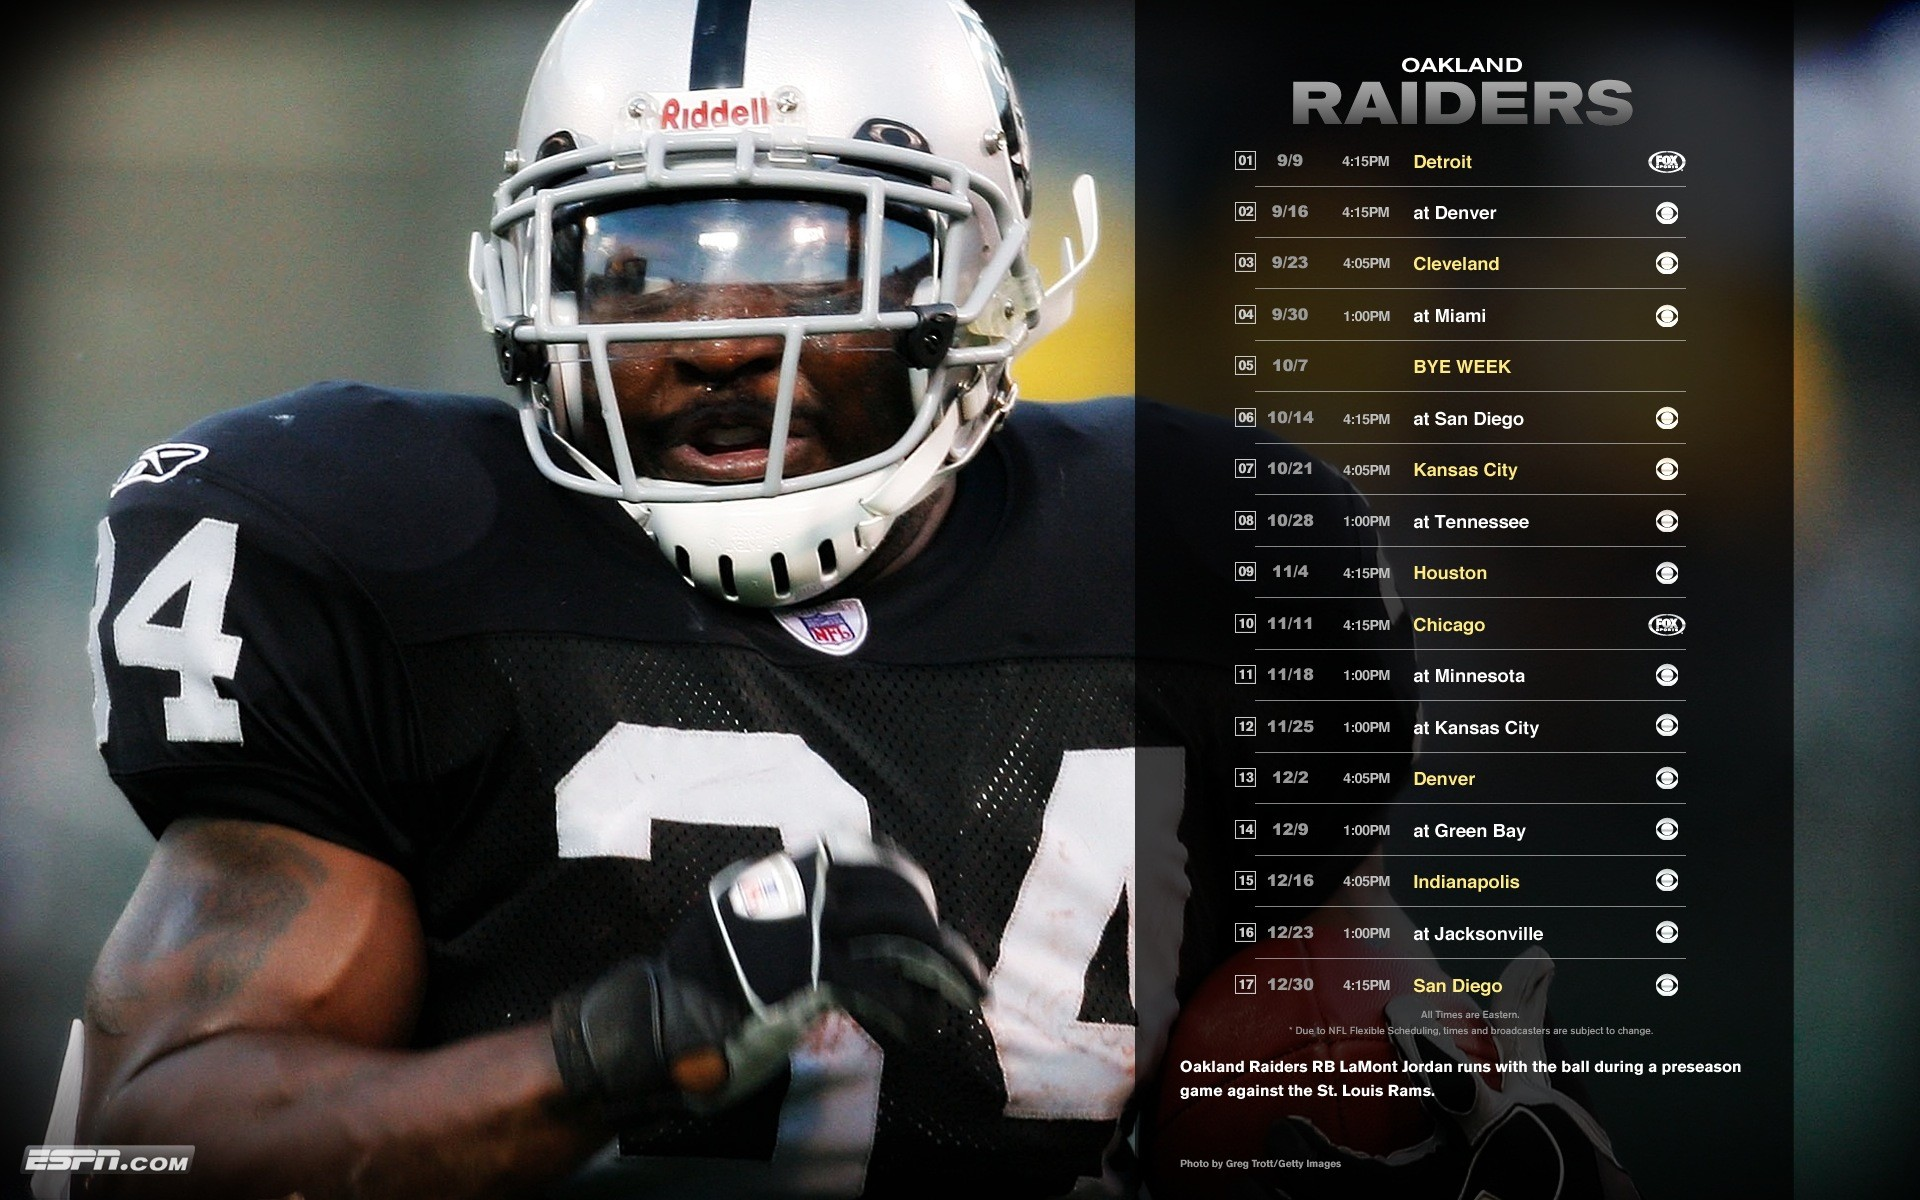 1920x1080 Oakland Raiders Wallpaper 1024A 768 Wallpapers 36